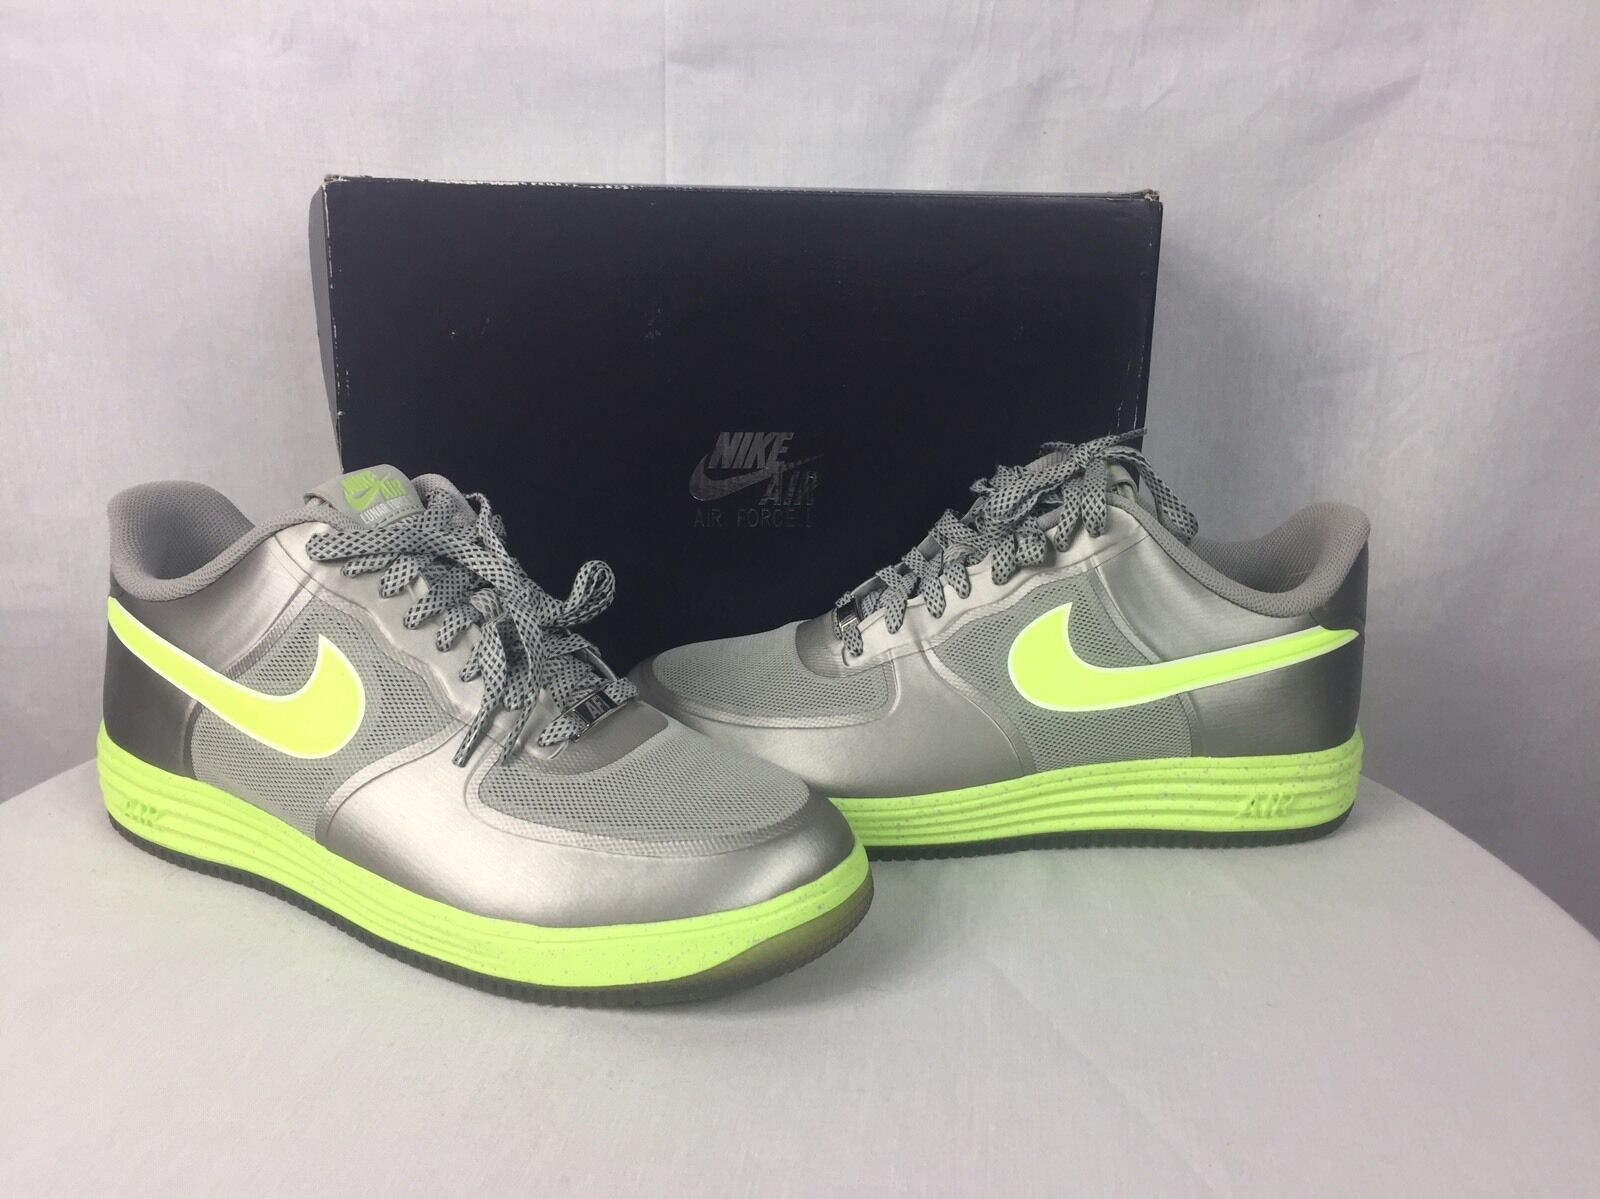 Nuevo!Nike Lunar Force 1 1 Force Fusible comodo 4b3959